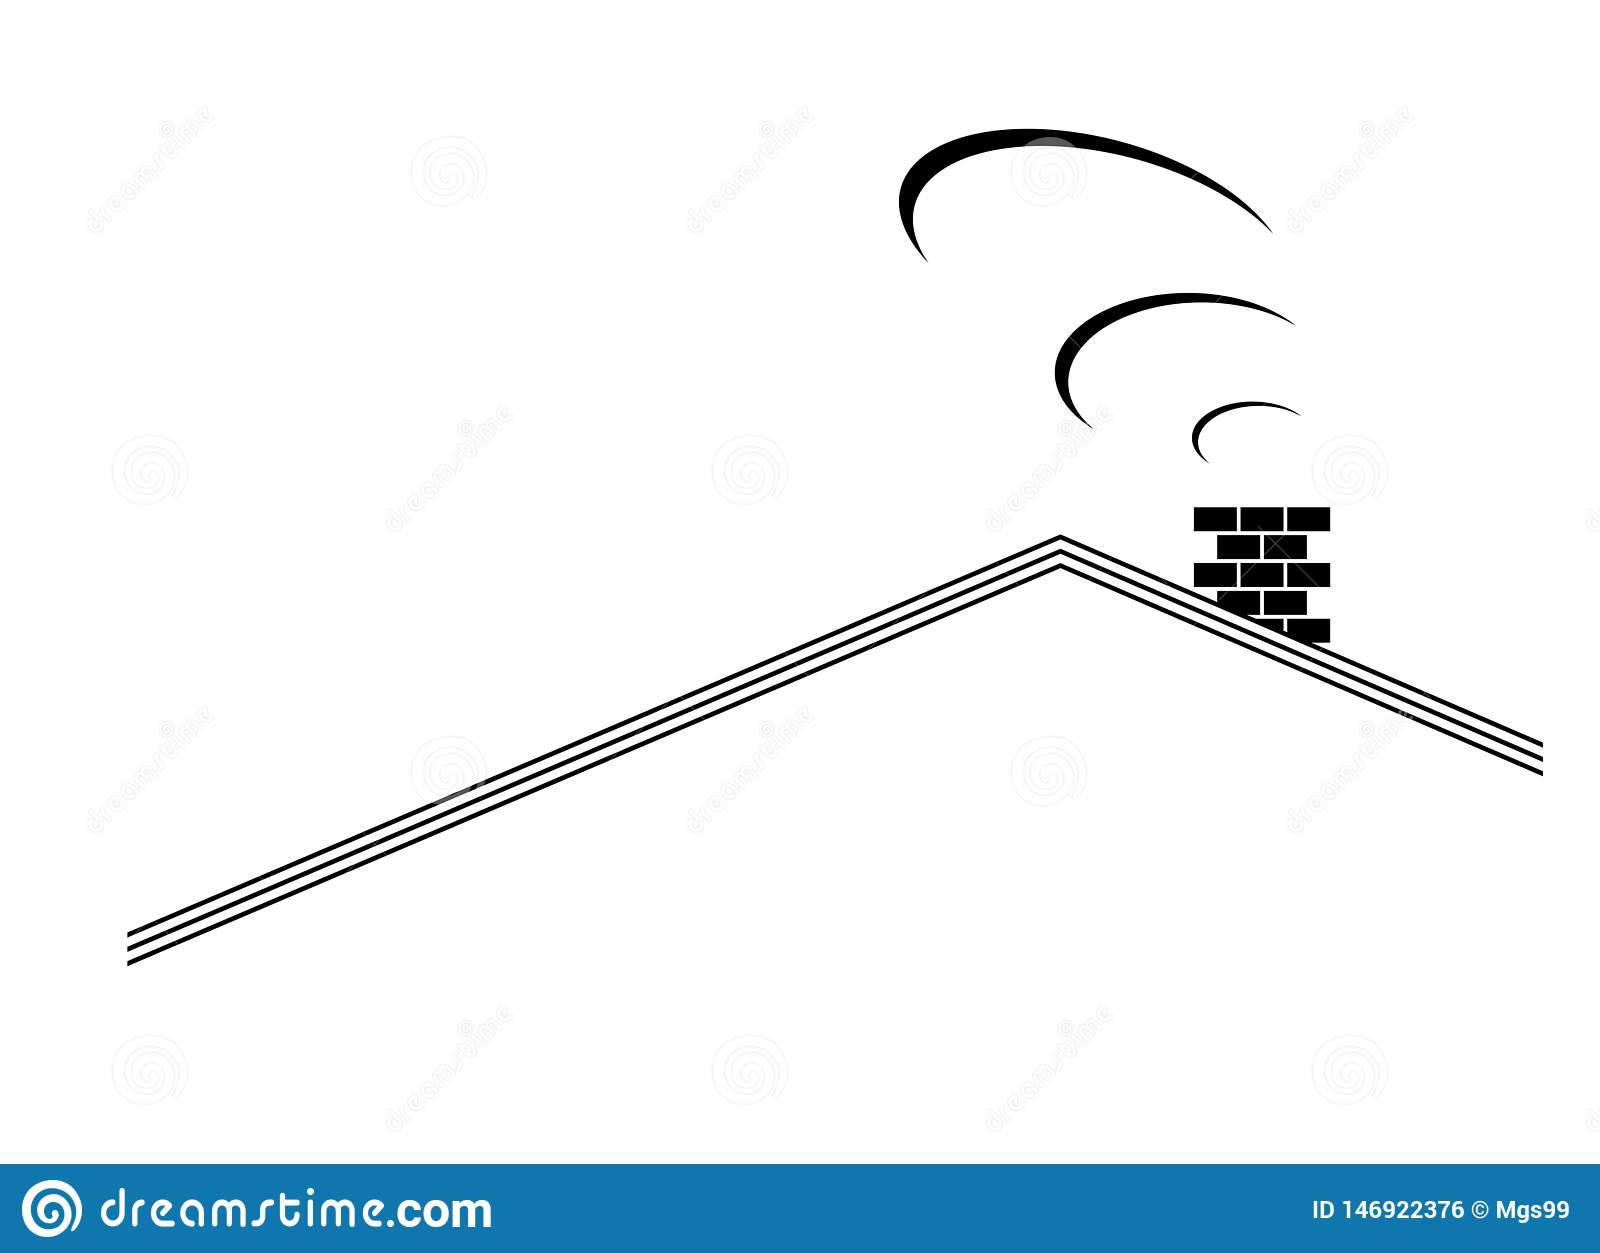 A Home Roof Top Graphic Design Stock Illustration Illustration Of Clip White 146922376